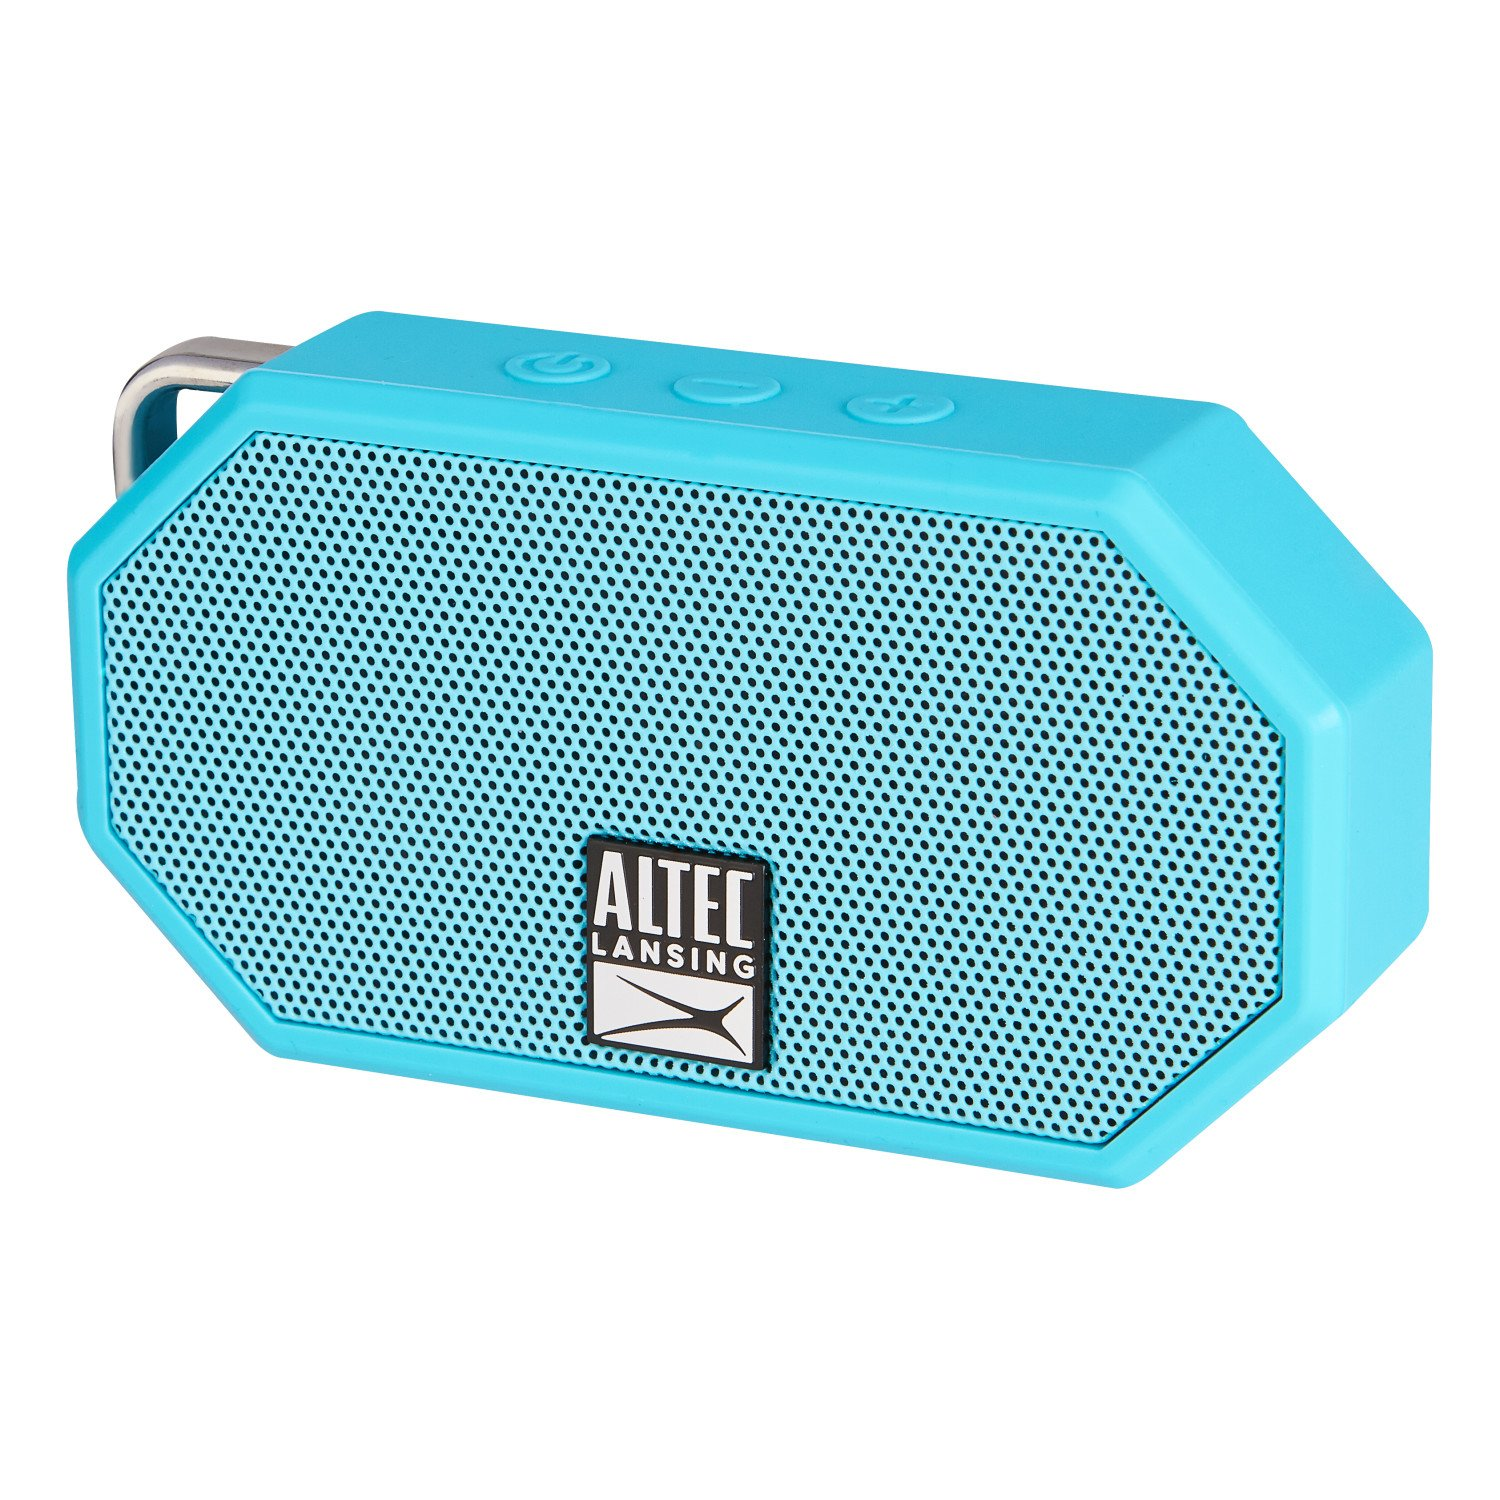 Altec, Lansing, Mini, H20, 3, Aqua, Blue, -, EVERYTHING, PROOF, Rugged, &, waterproof, Bluetooth, speaker, (6, hrs, Battery),